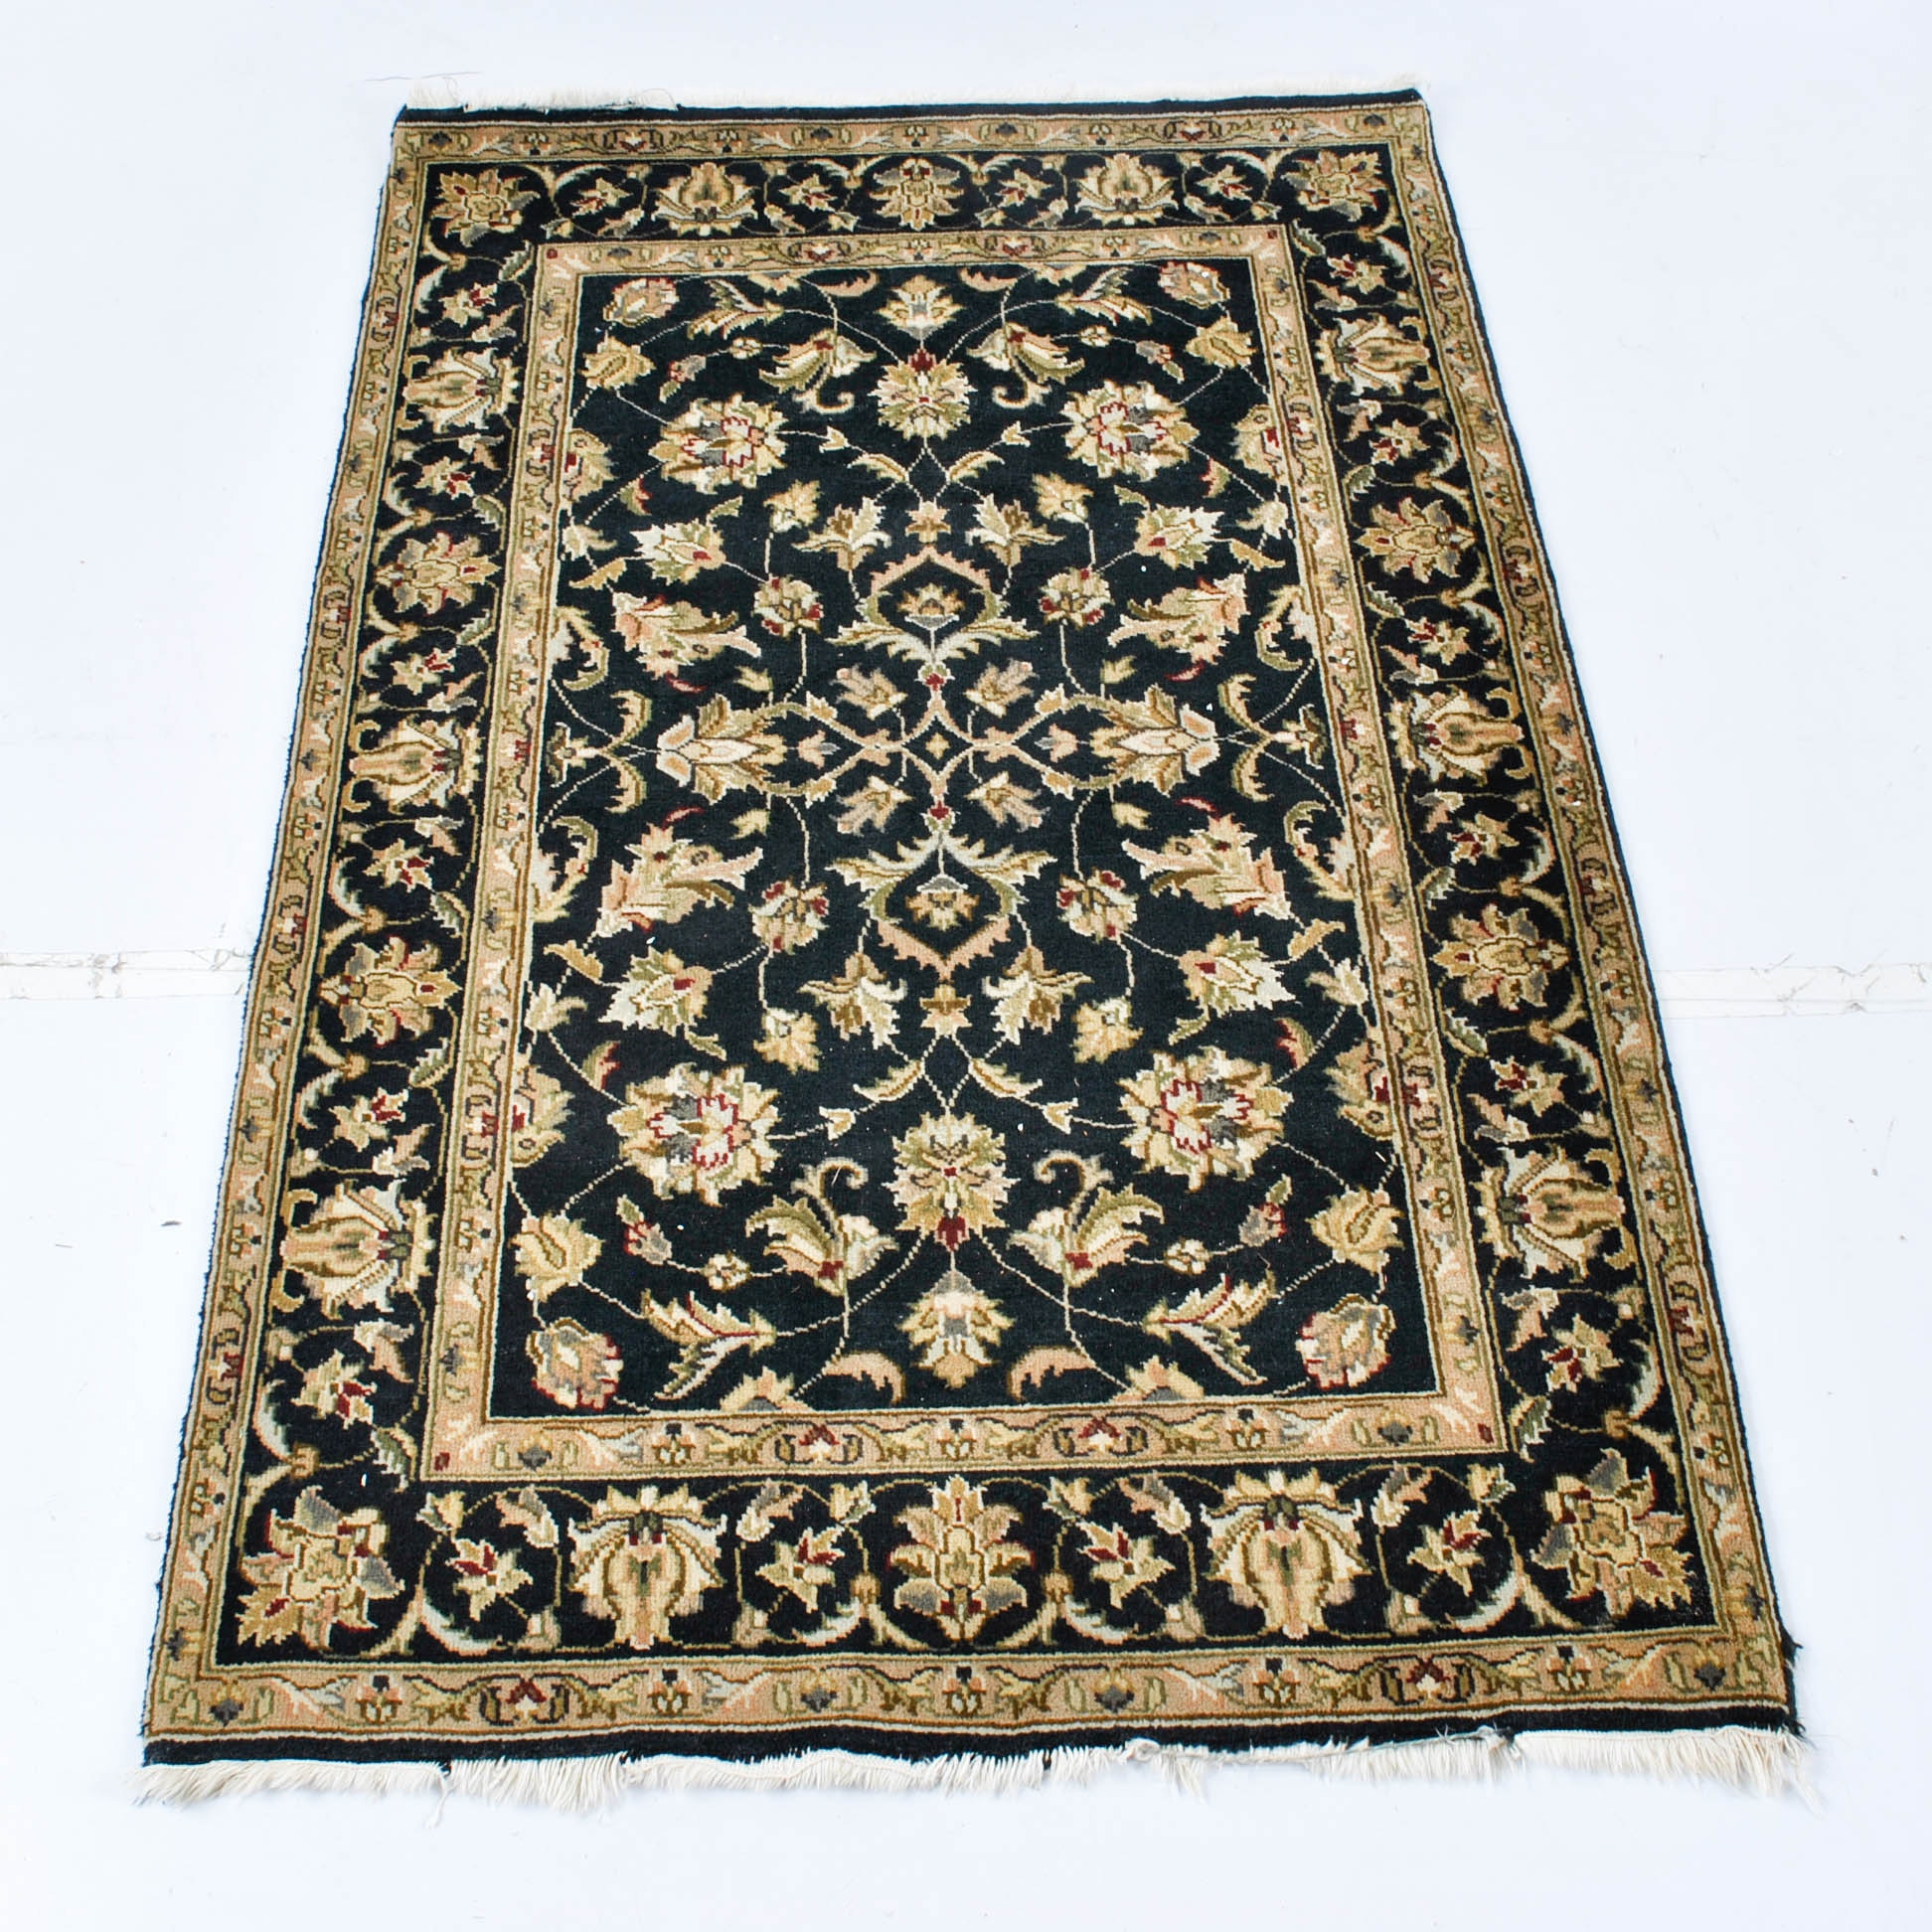 Hand-Knotted Indian Agra Wool Area Rug